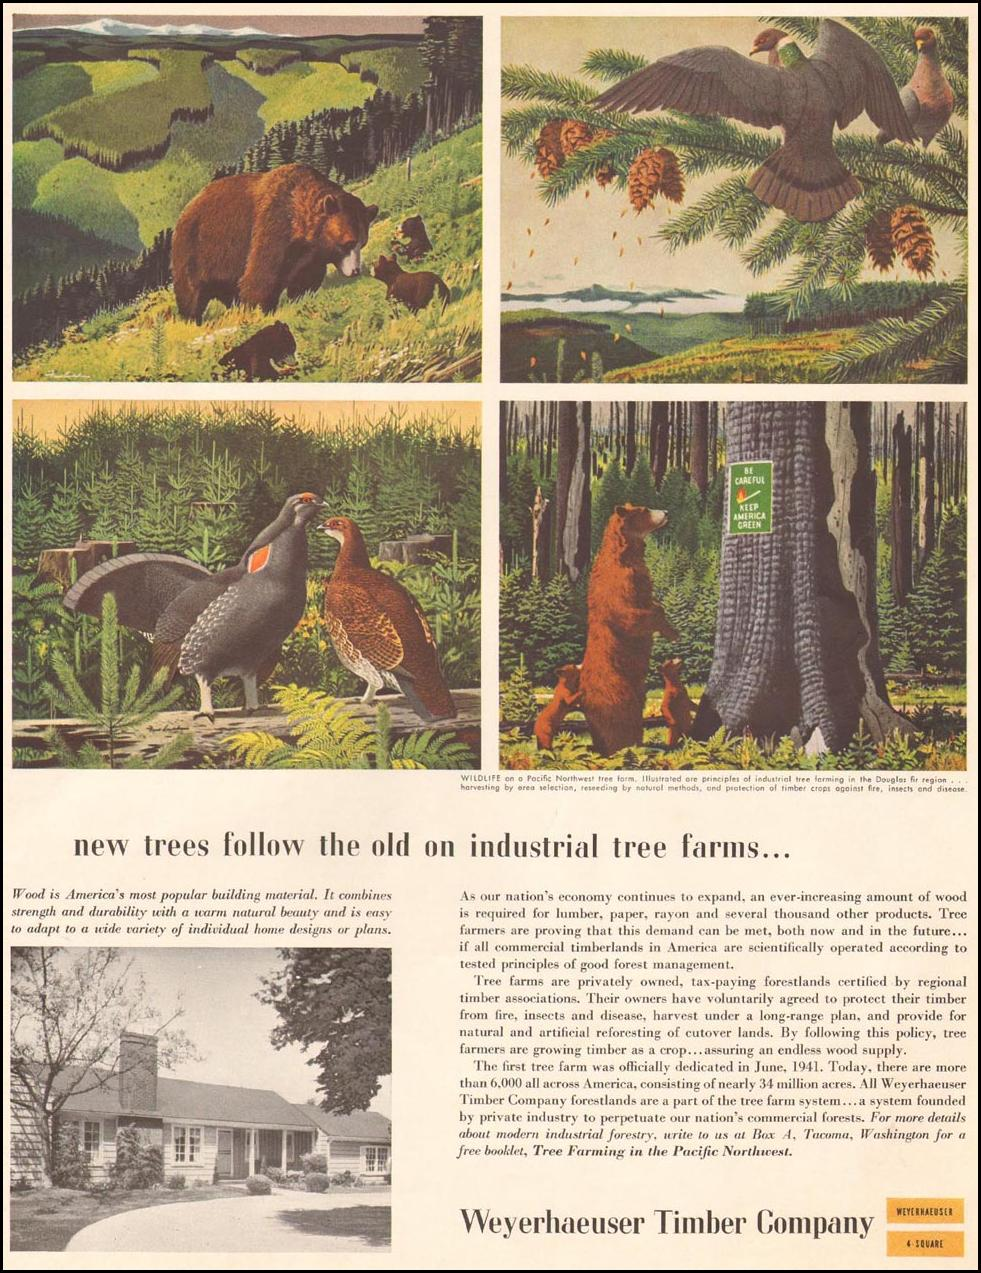 WEYERHAUSER TIMBER SATURDAY EVENING POST 03/26/1955